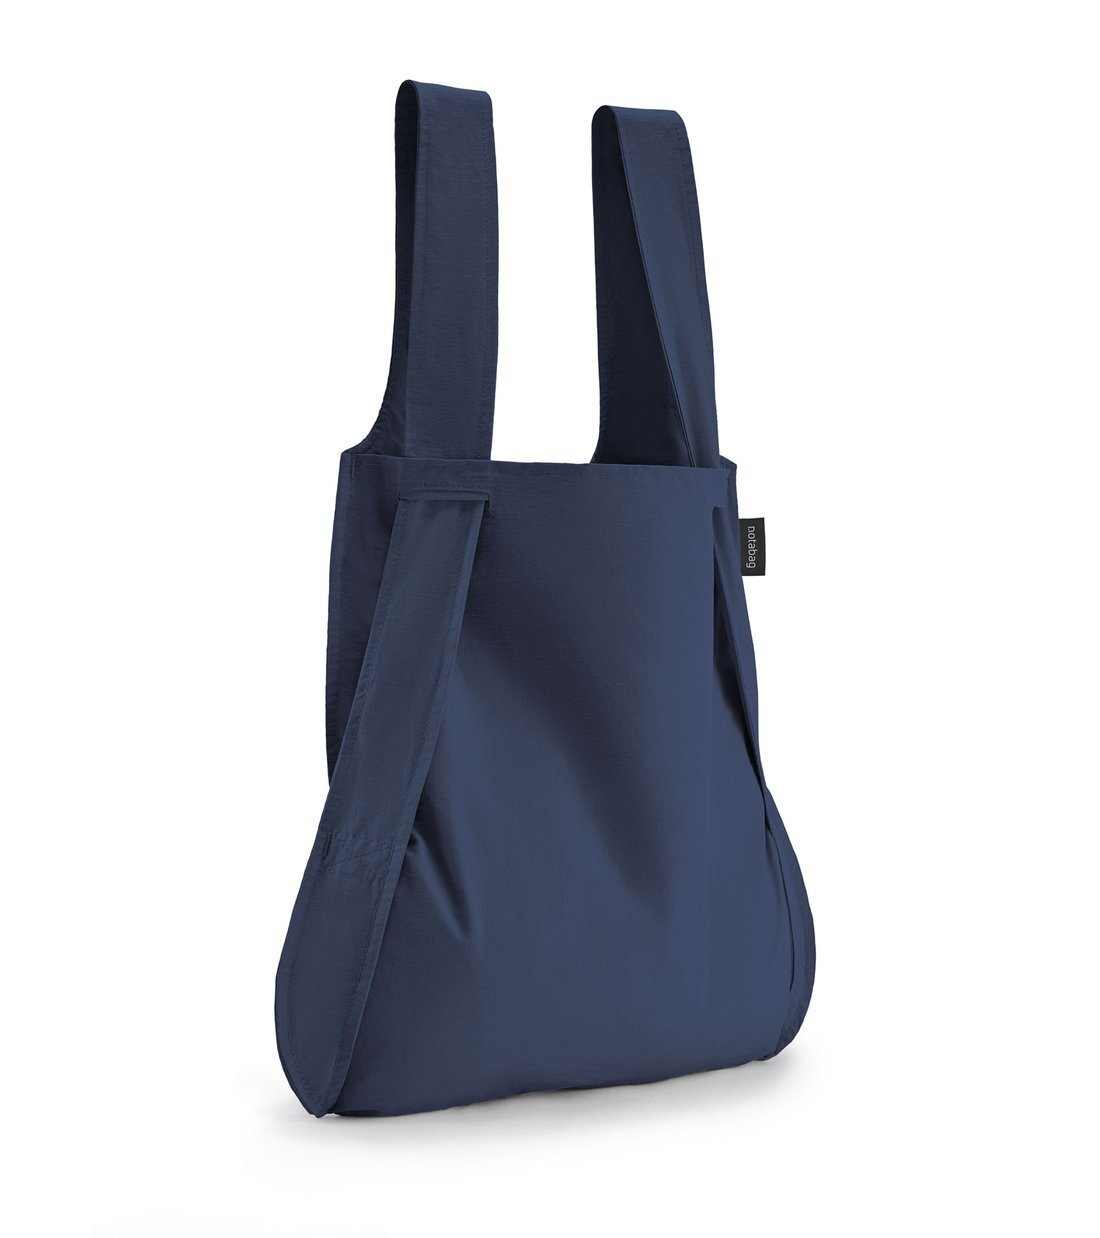 NOTABAG-Navy-Blue-01.jpg